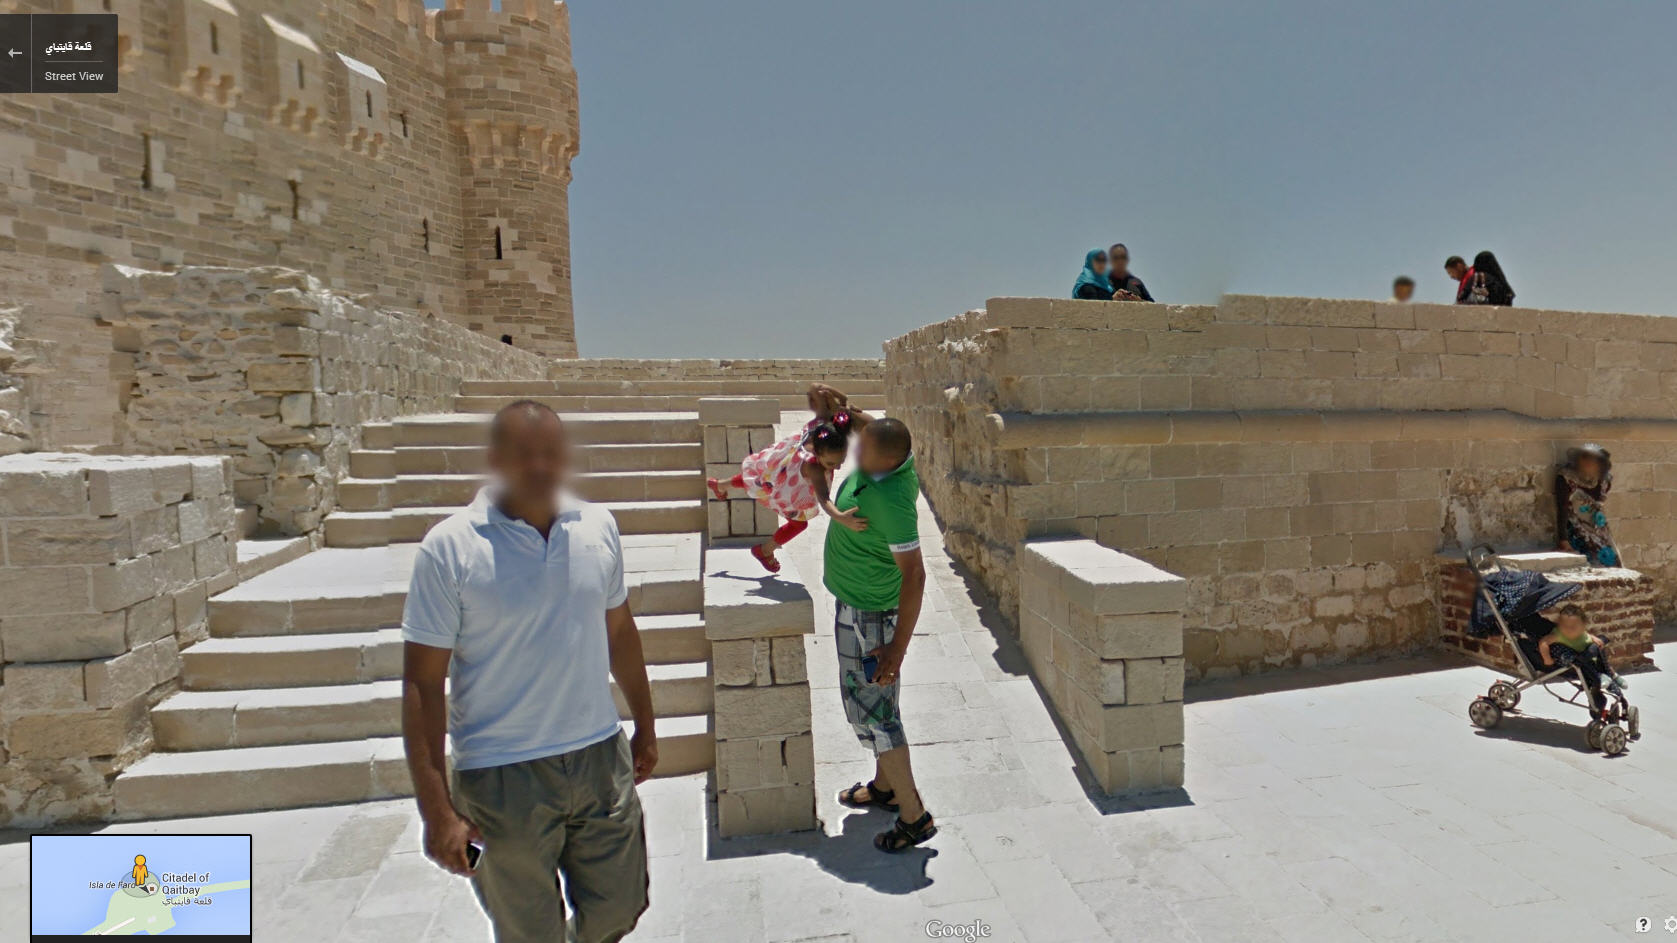 Google Street View Egypt Now Live!